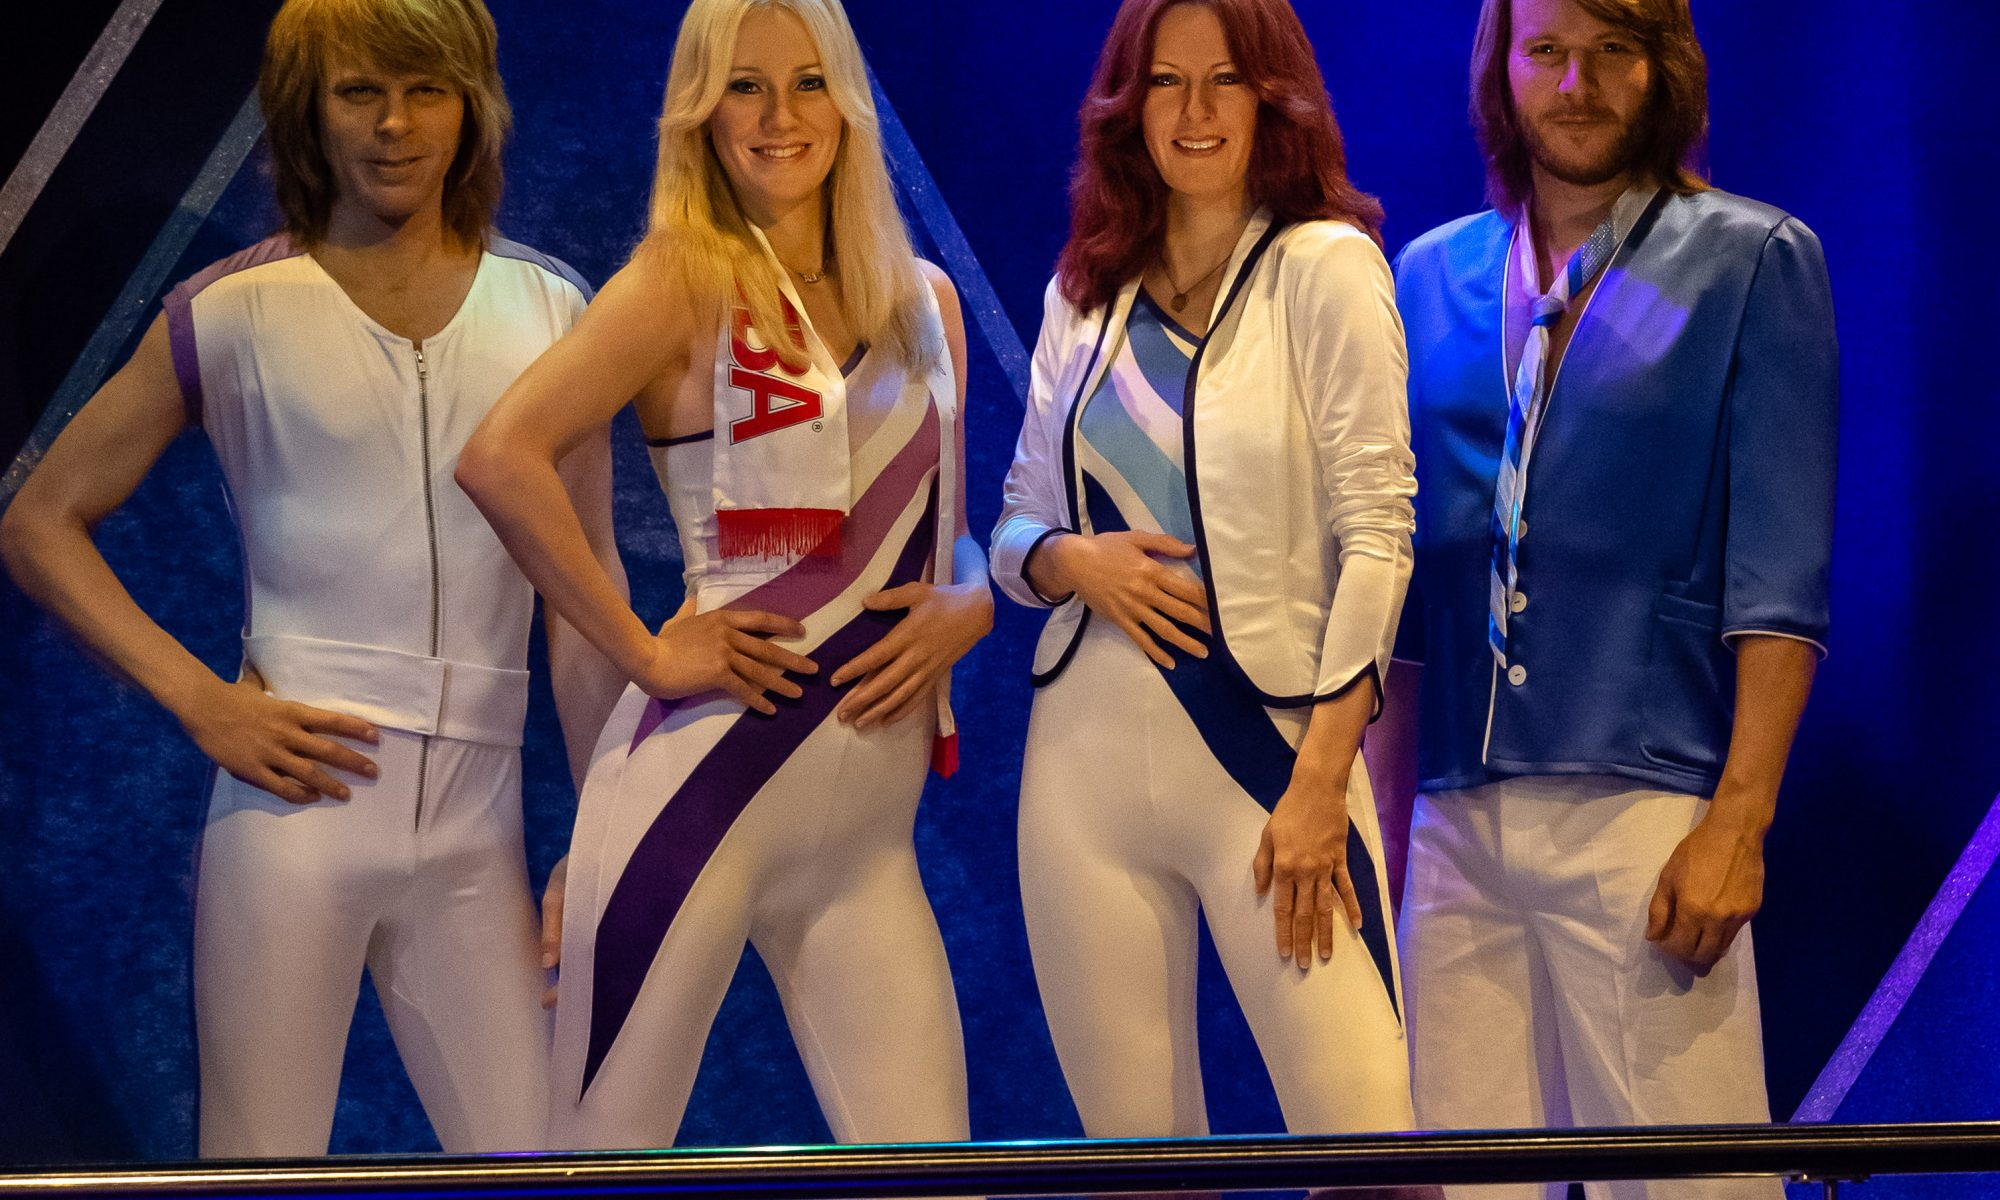 Finally, ABBA The Museum opens for visitors again!